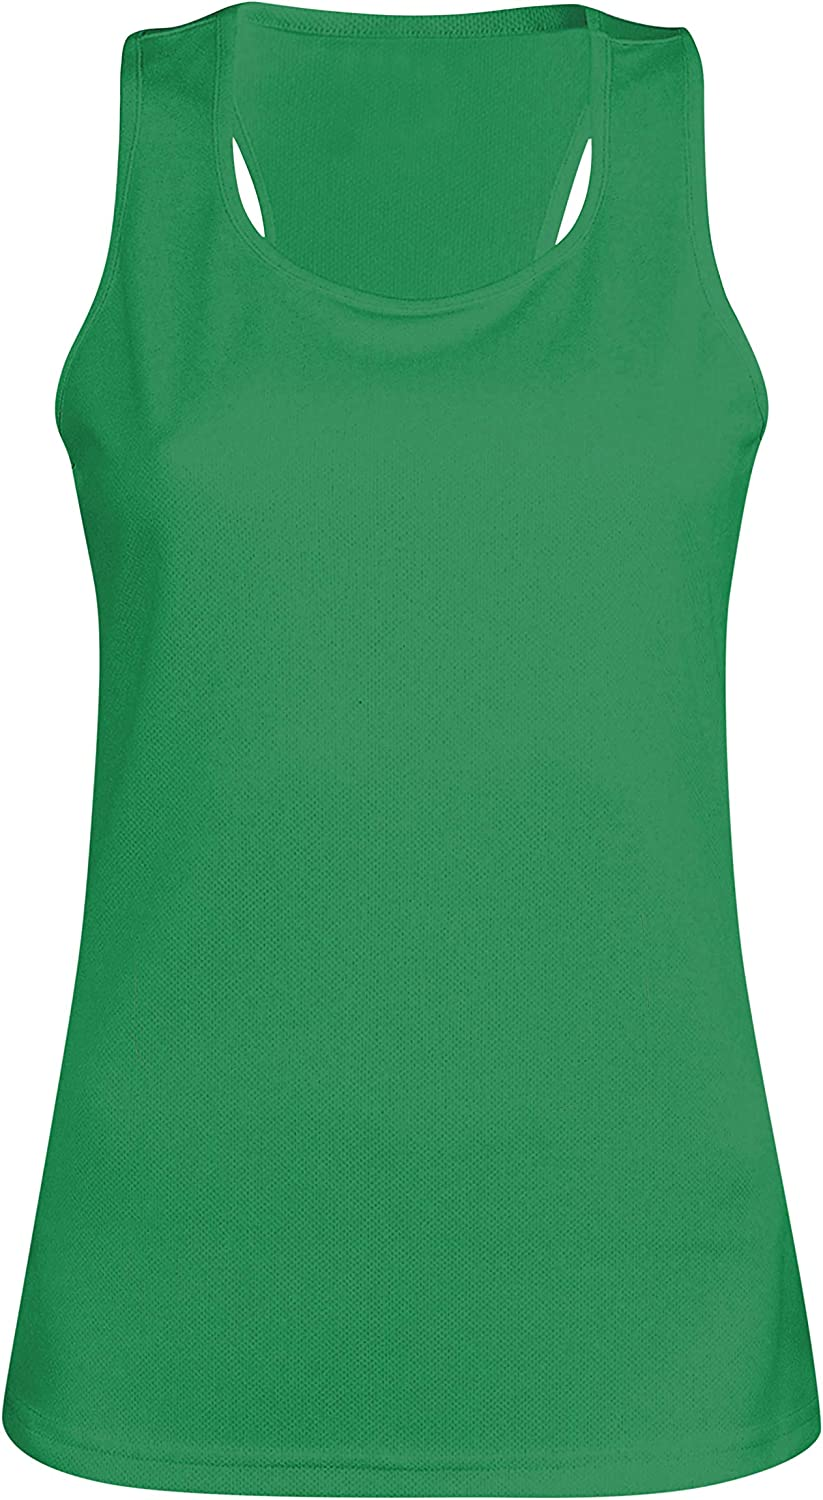 MKR Womens Quick Dry Breathable Sports Running Jogging Fitness Yoga Gym Vest Top